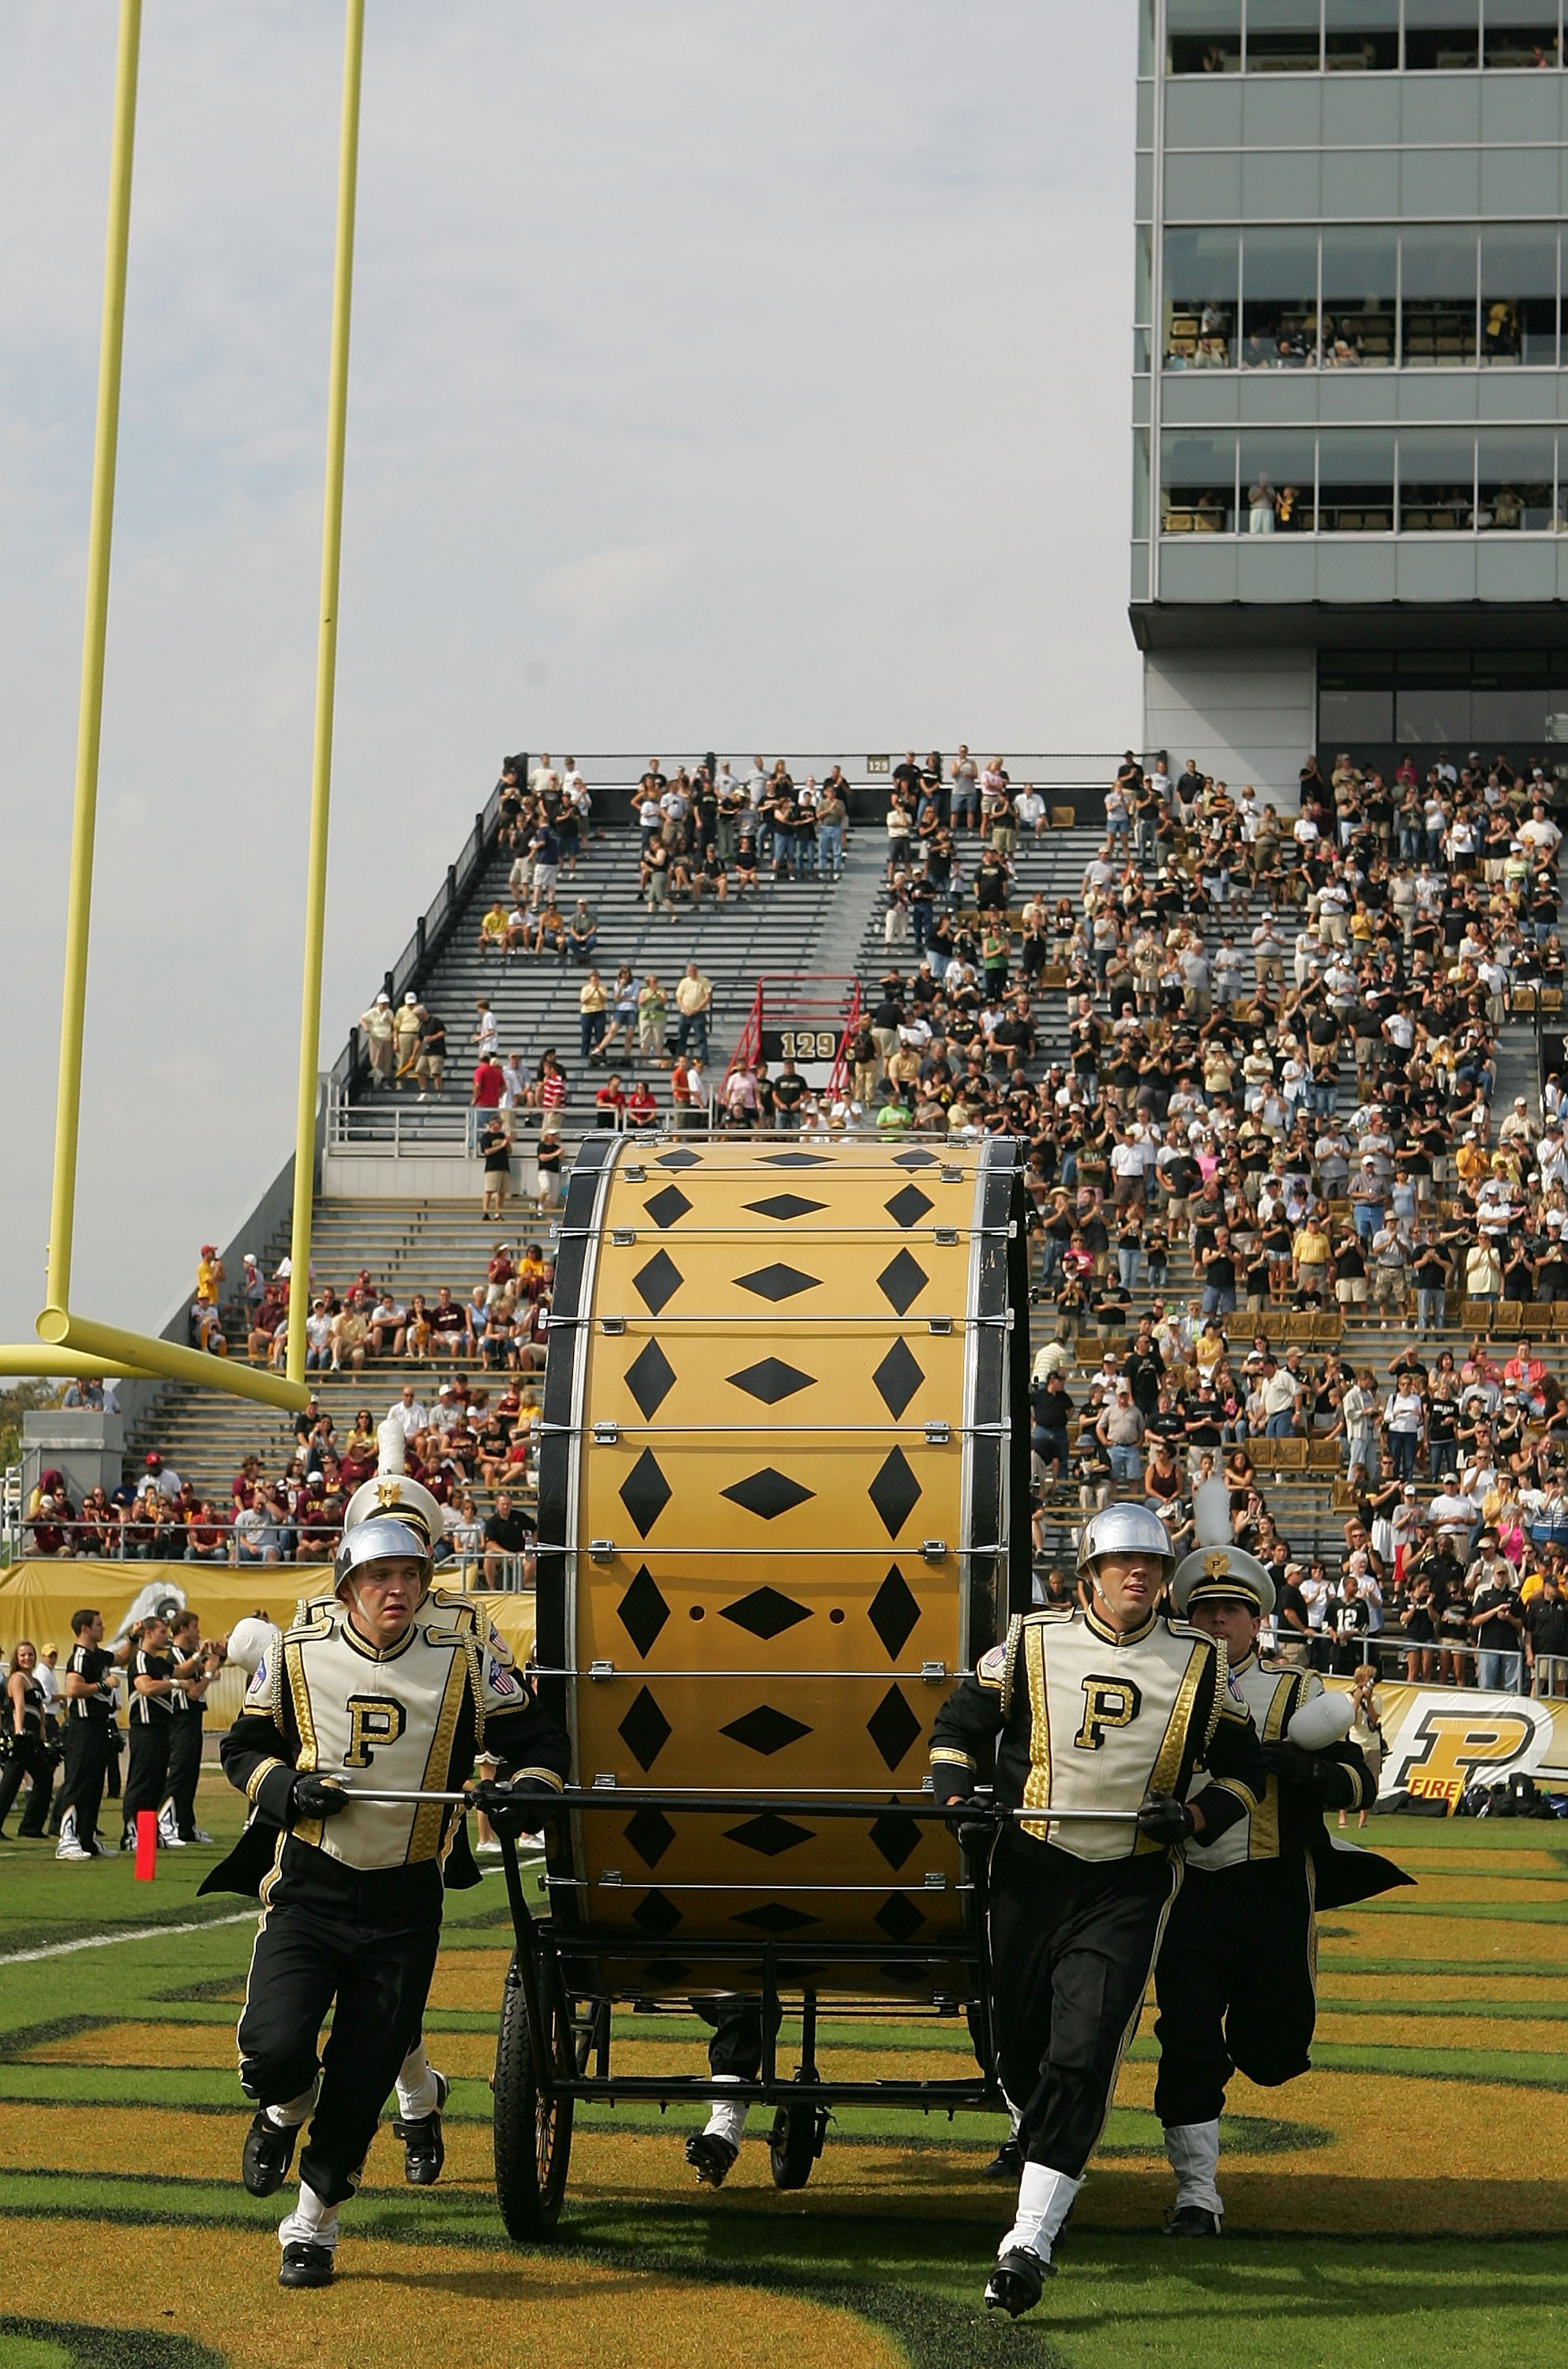 WEST LAFAYETTE, IN - SEPTEMBER 20:  Tthe Purdue 'All American' Marching Band before a game against the Central Michigan Chippewas at Ross-Ade Stadium on September 20, 2008 in West Lafayette, Indiana.  (Photo by Ronald Martinez/Getty Images)